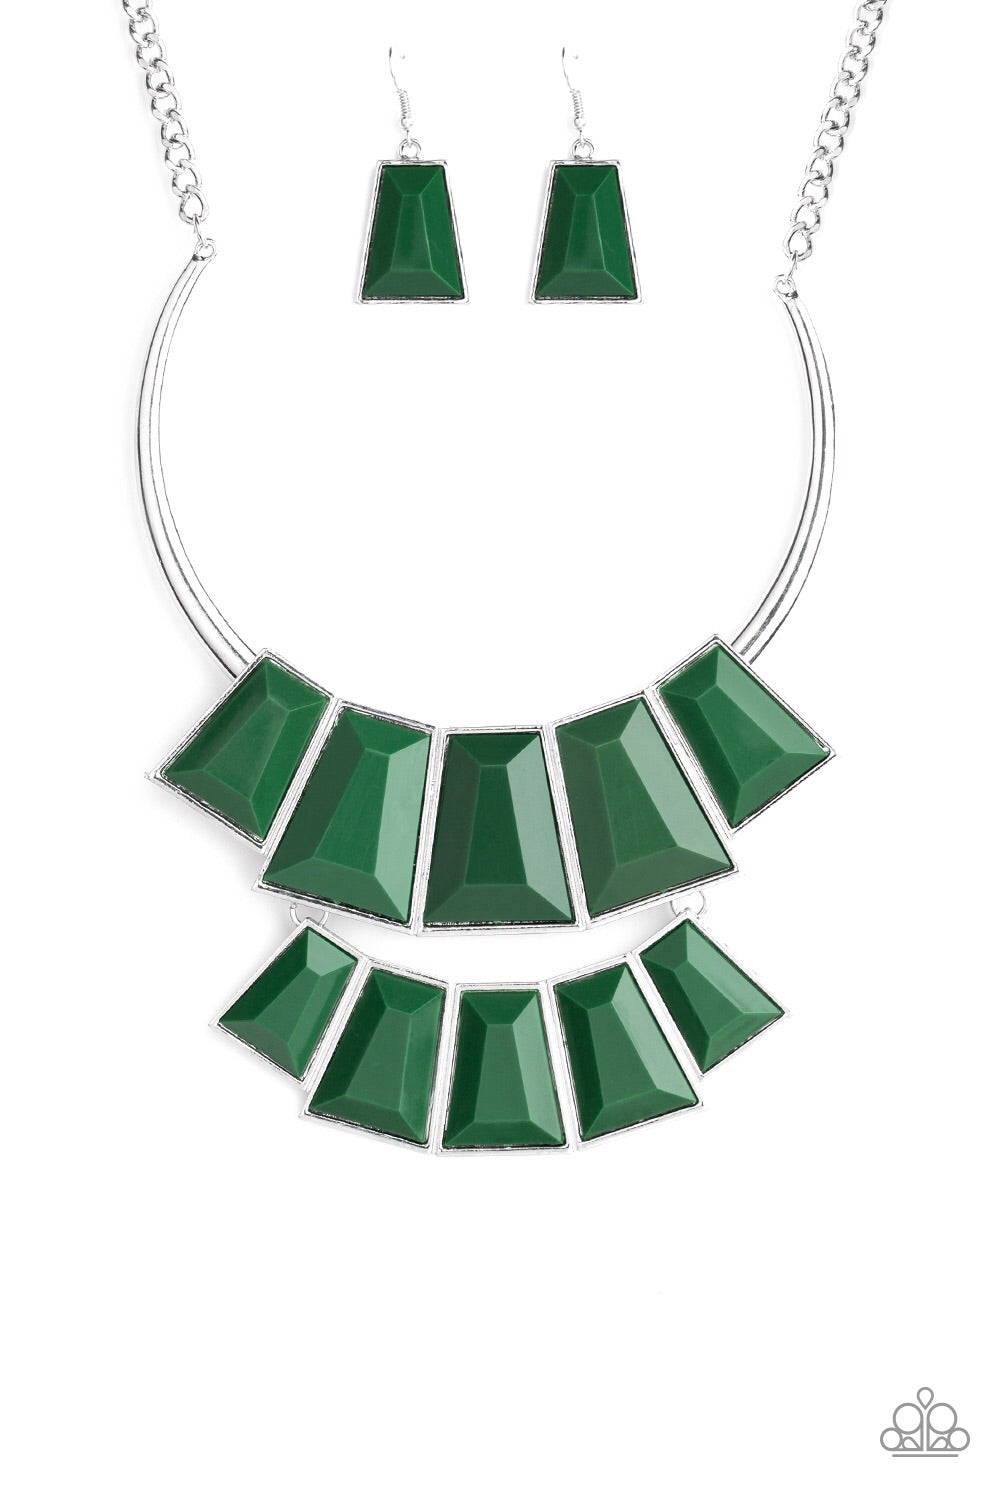 Paparazzi Lions, Tigress, and Bears Necklace - Green